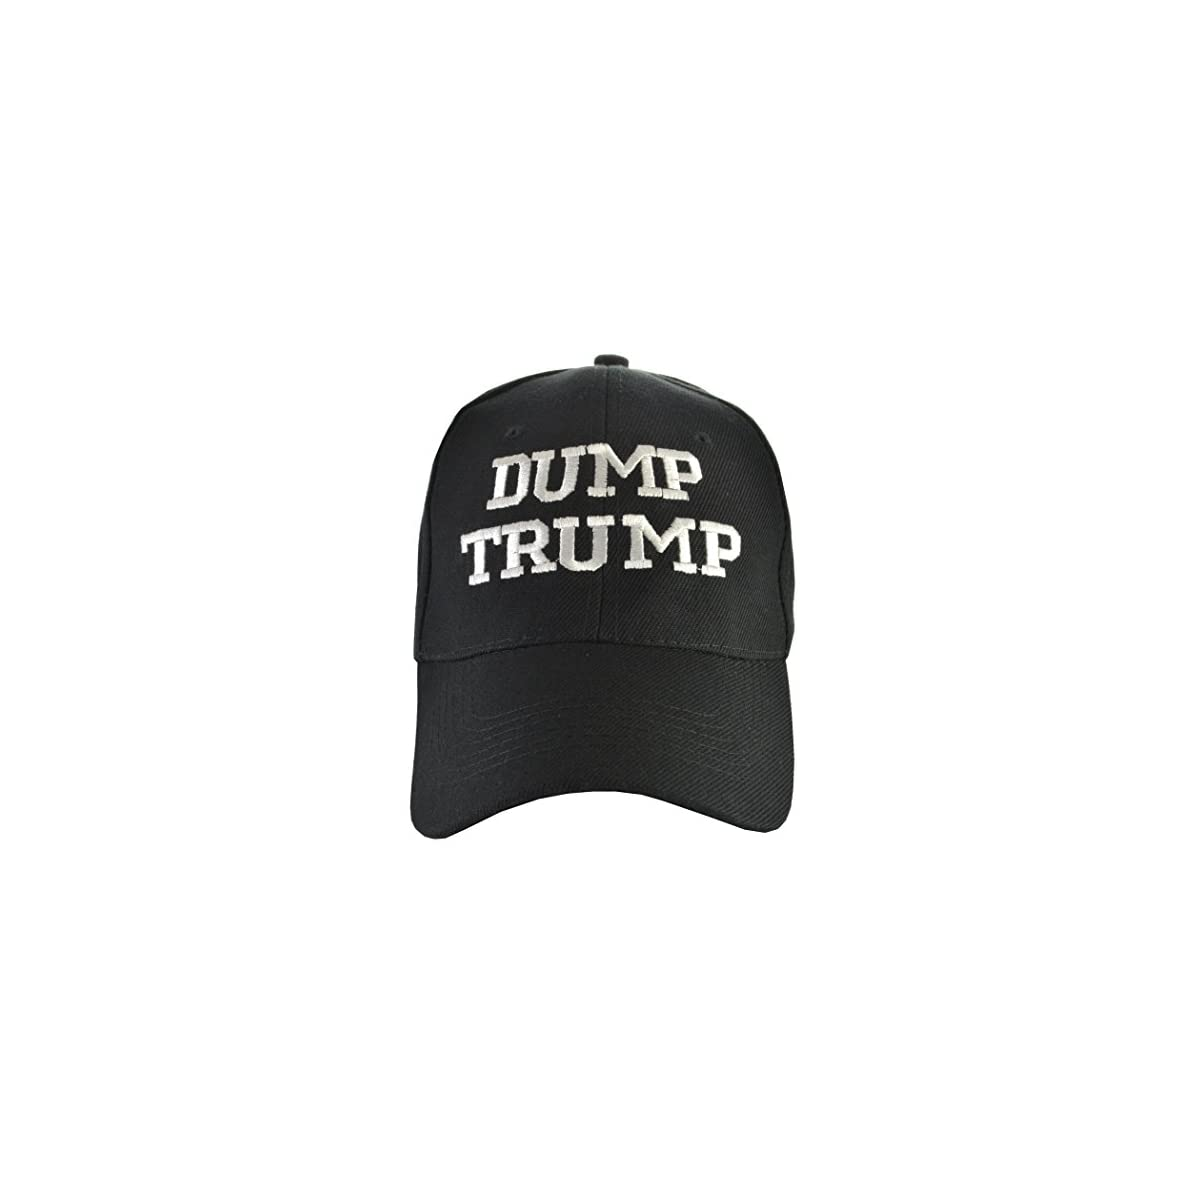 Incrediblegifts Anti-Trump Hats (9 Styles) Fuck Trump/Dump Trump/Lock Him up